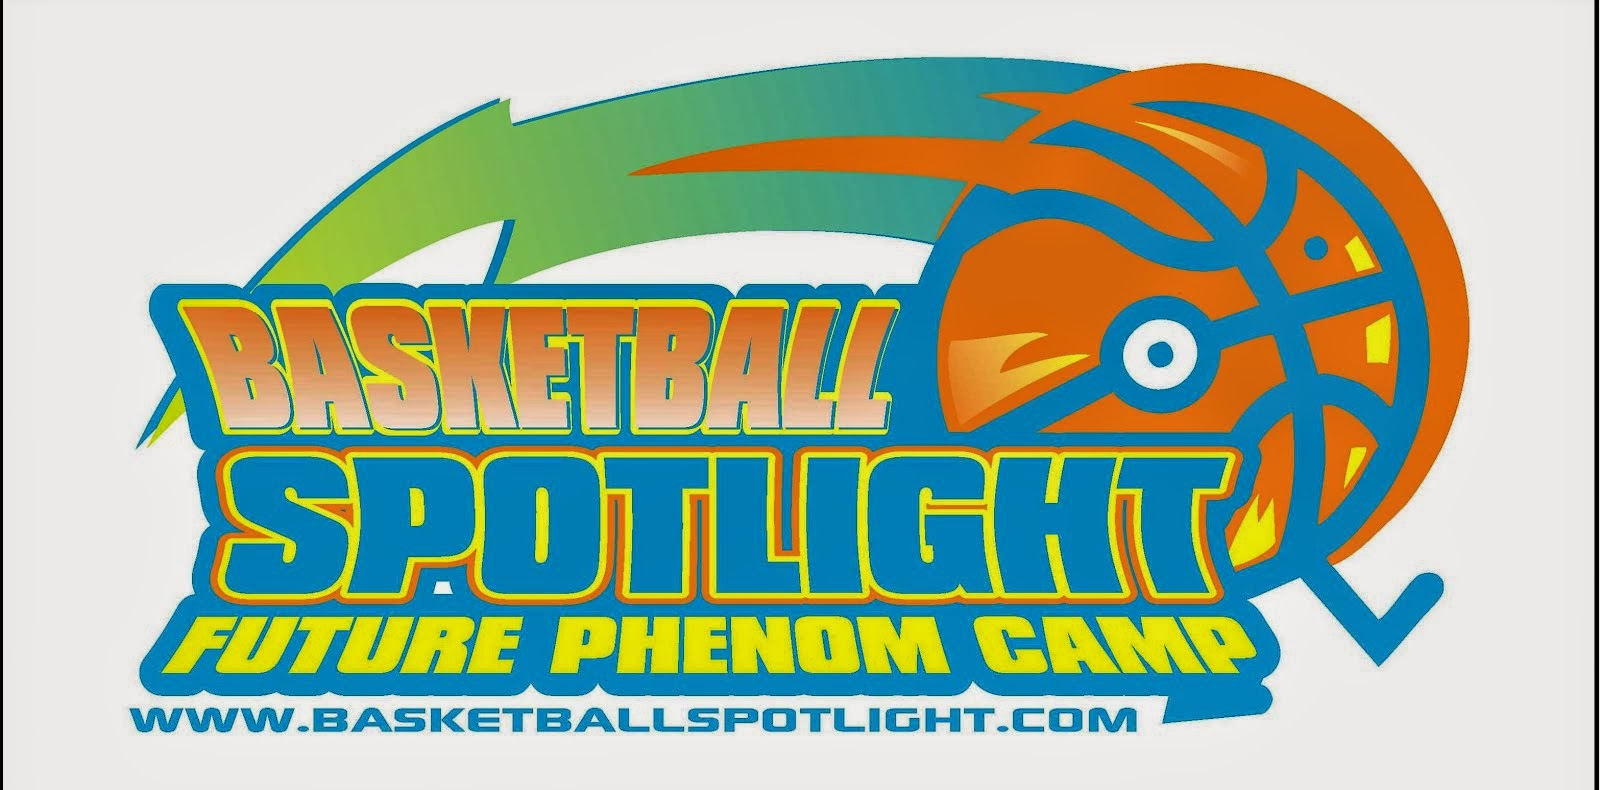 Basketball Spotlight Future Phenom Camp (August 23rd and 24th)